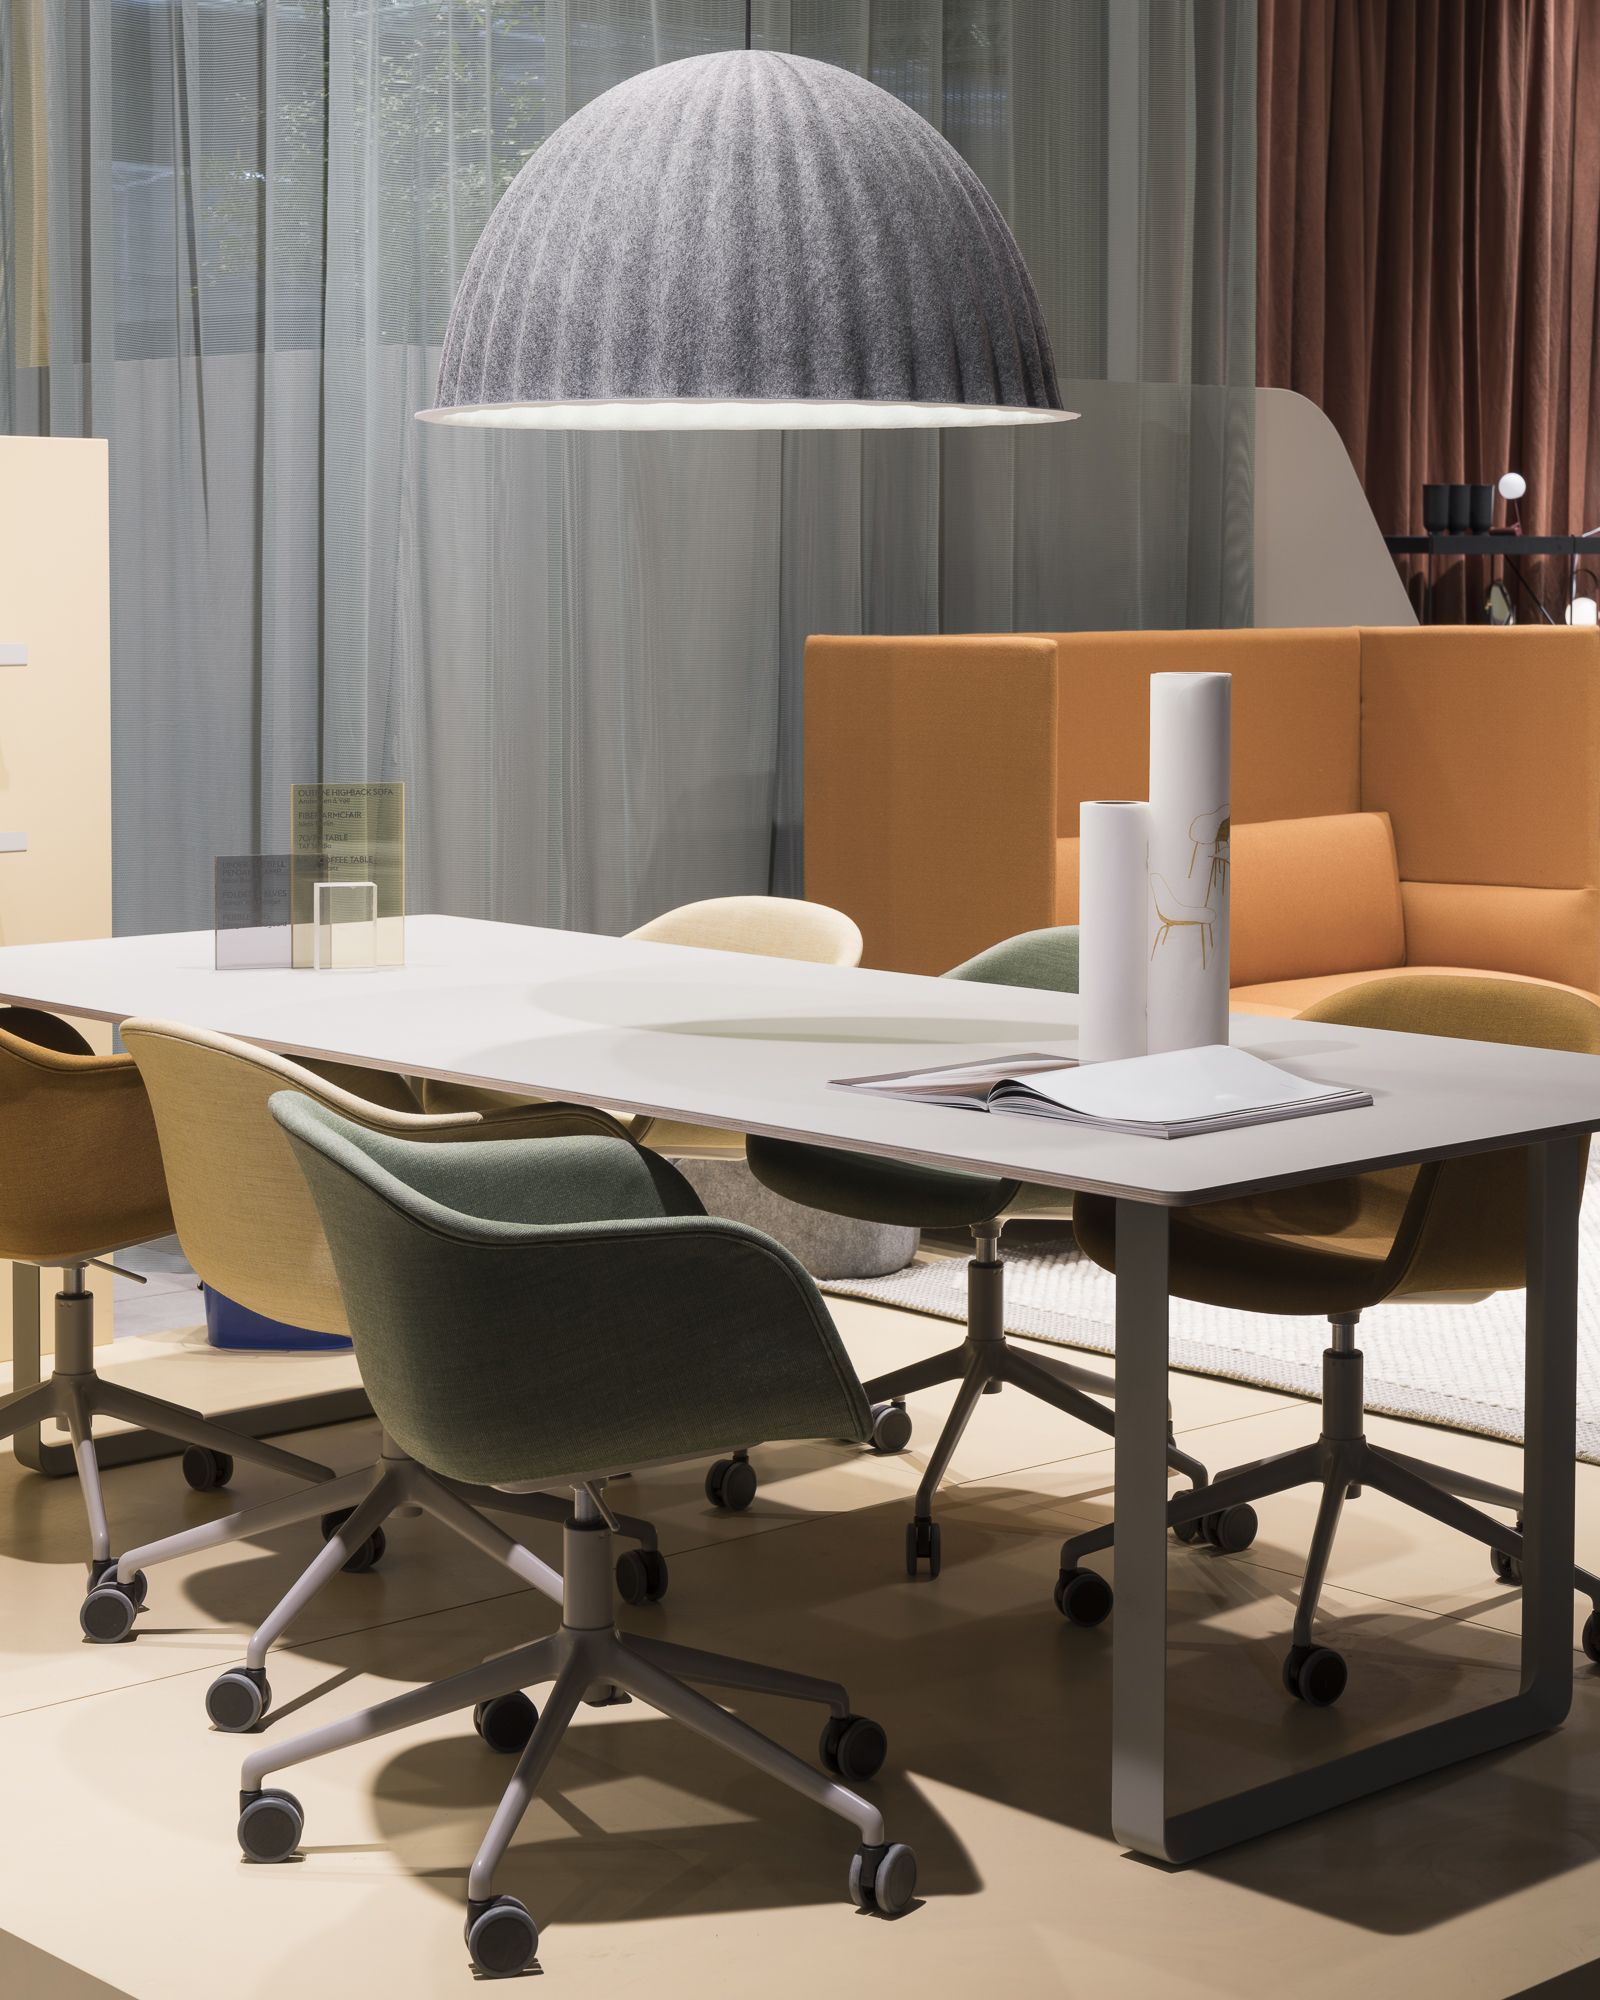 Scandinavian lighting inspiration from muuto under the bell is a pendant lamp that is multi